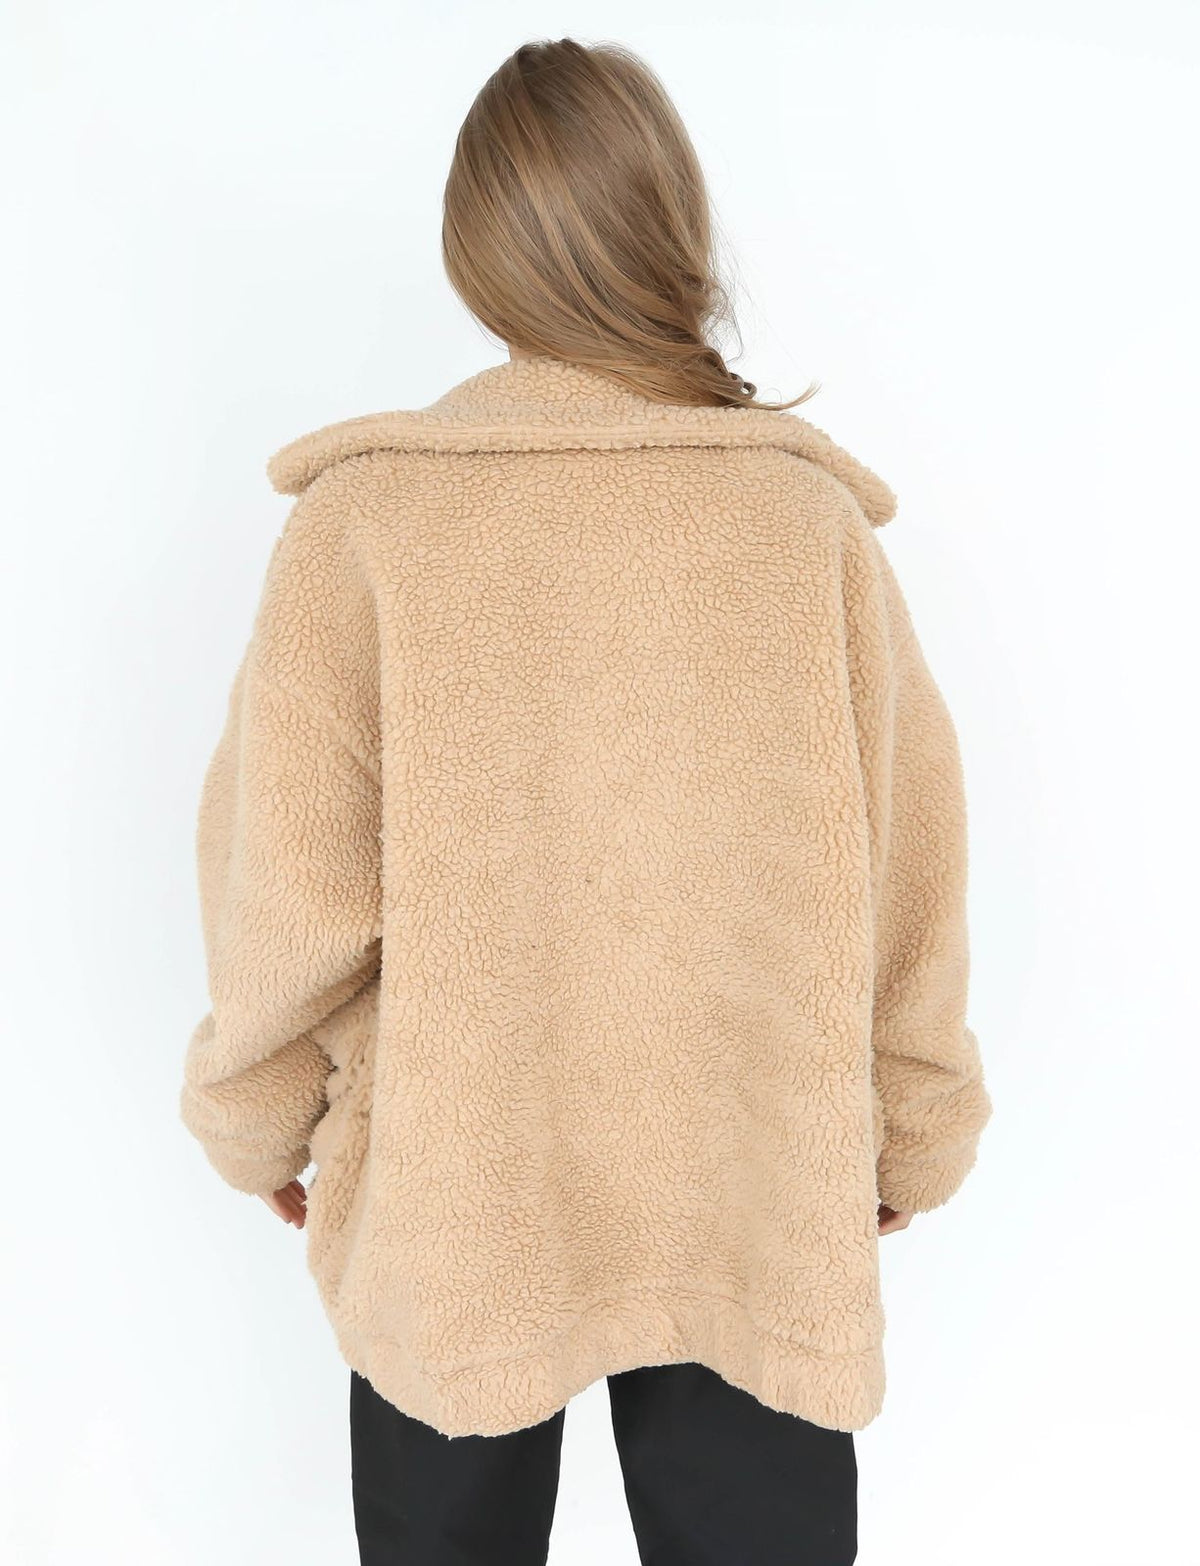 Women's Ladies Long Sleeve Oversized Loose Knitted Sweater Jumper Cardigan Cotton Outwear Black Khaki